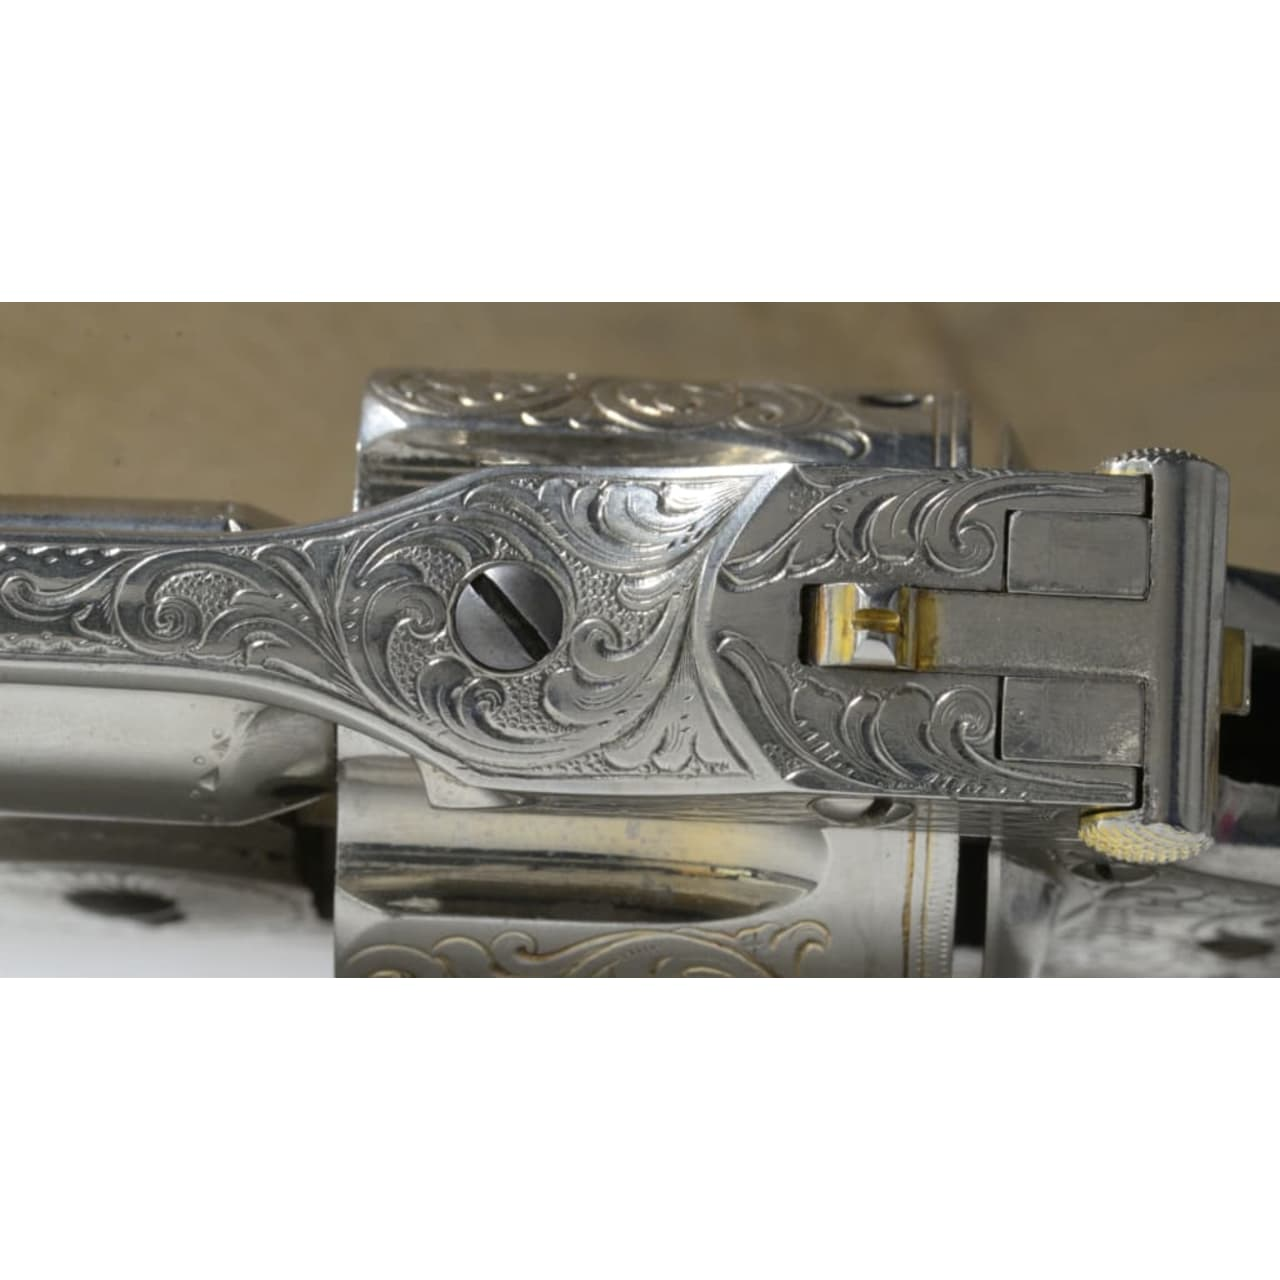 A cased deluxe Model 3 Russian First Model with engraved nickel finish